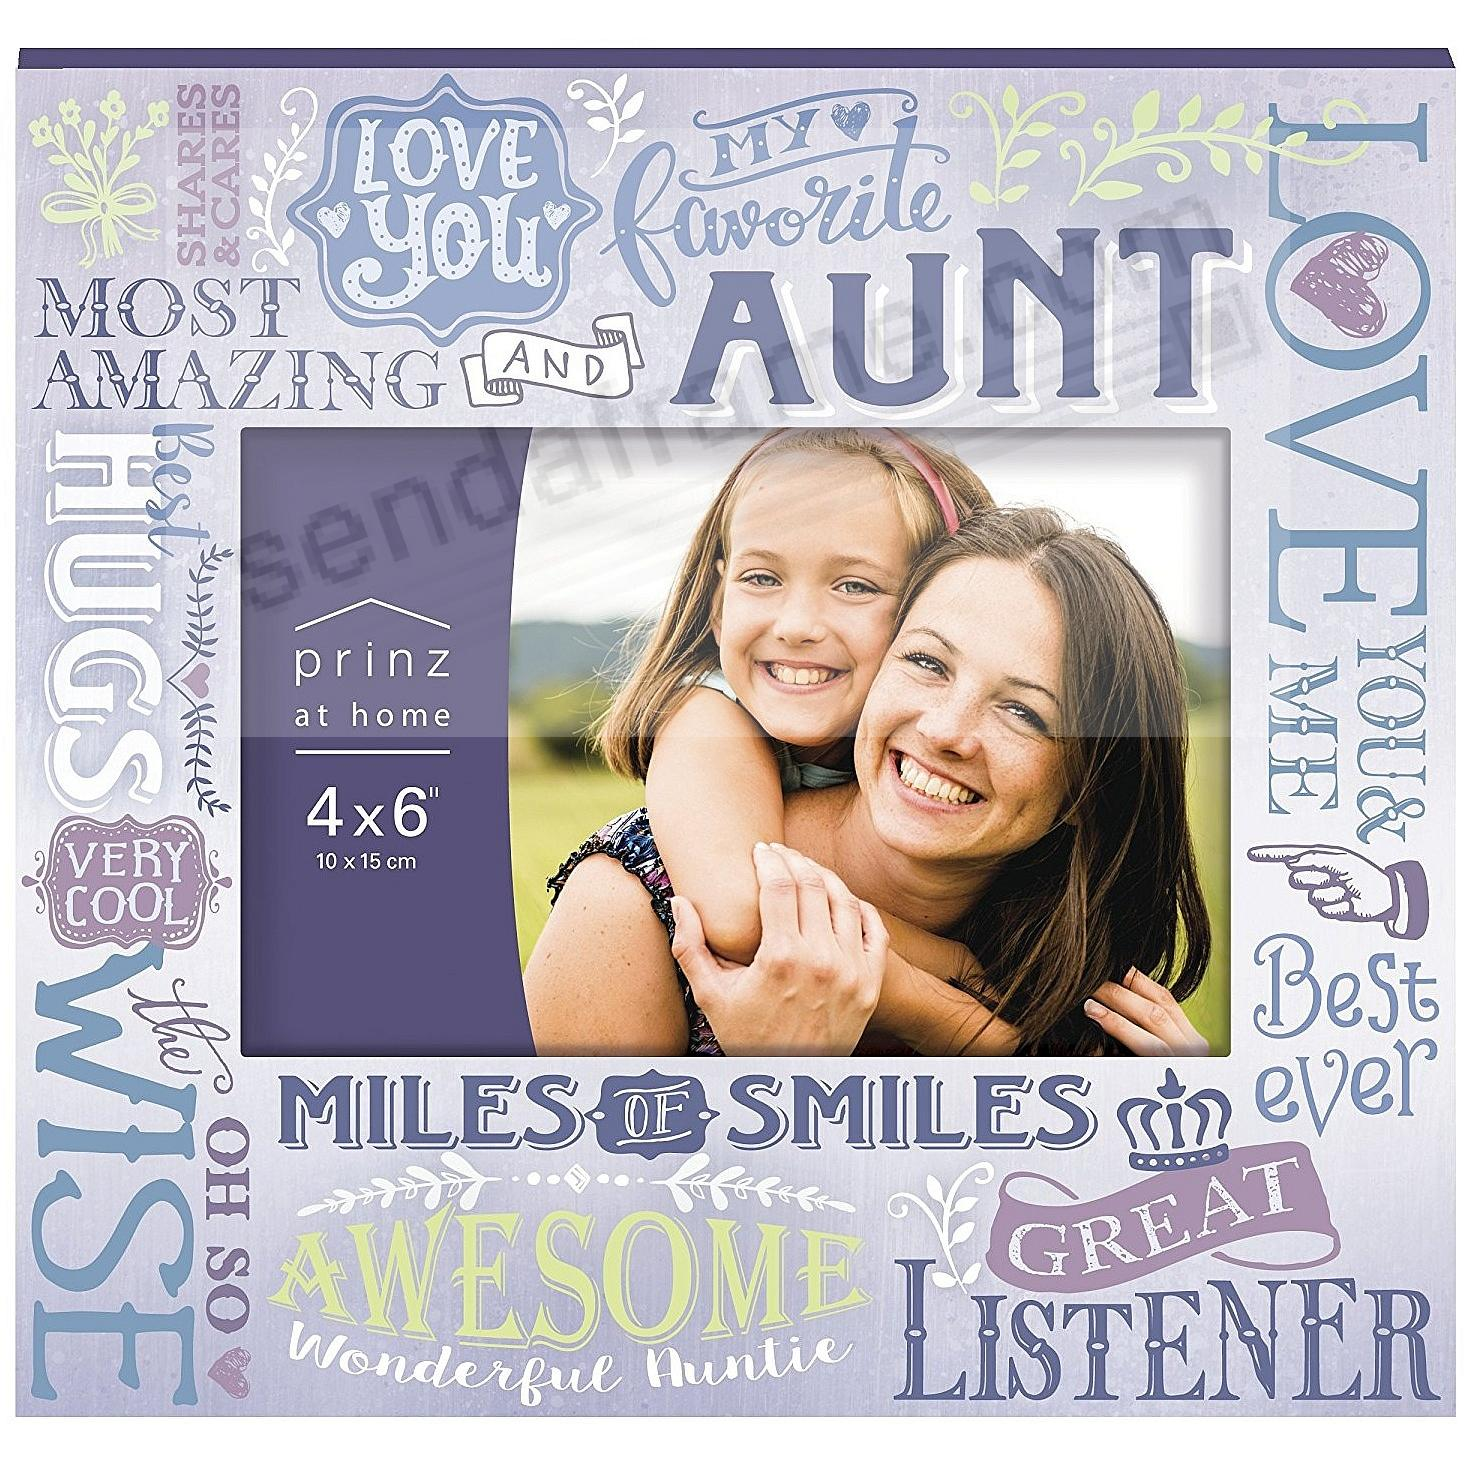 MORE THAN WORDS - AUNT - Wood Frame by Prinz®